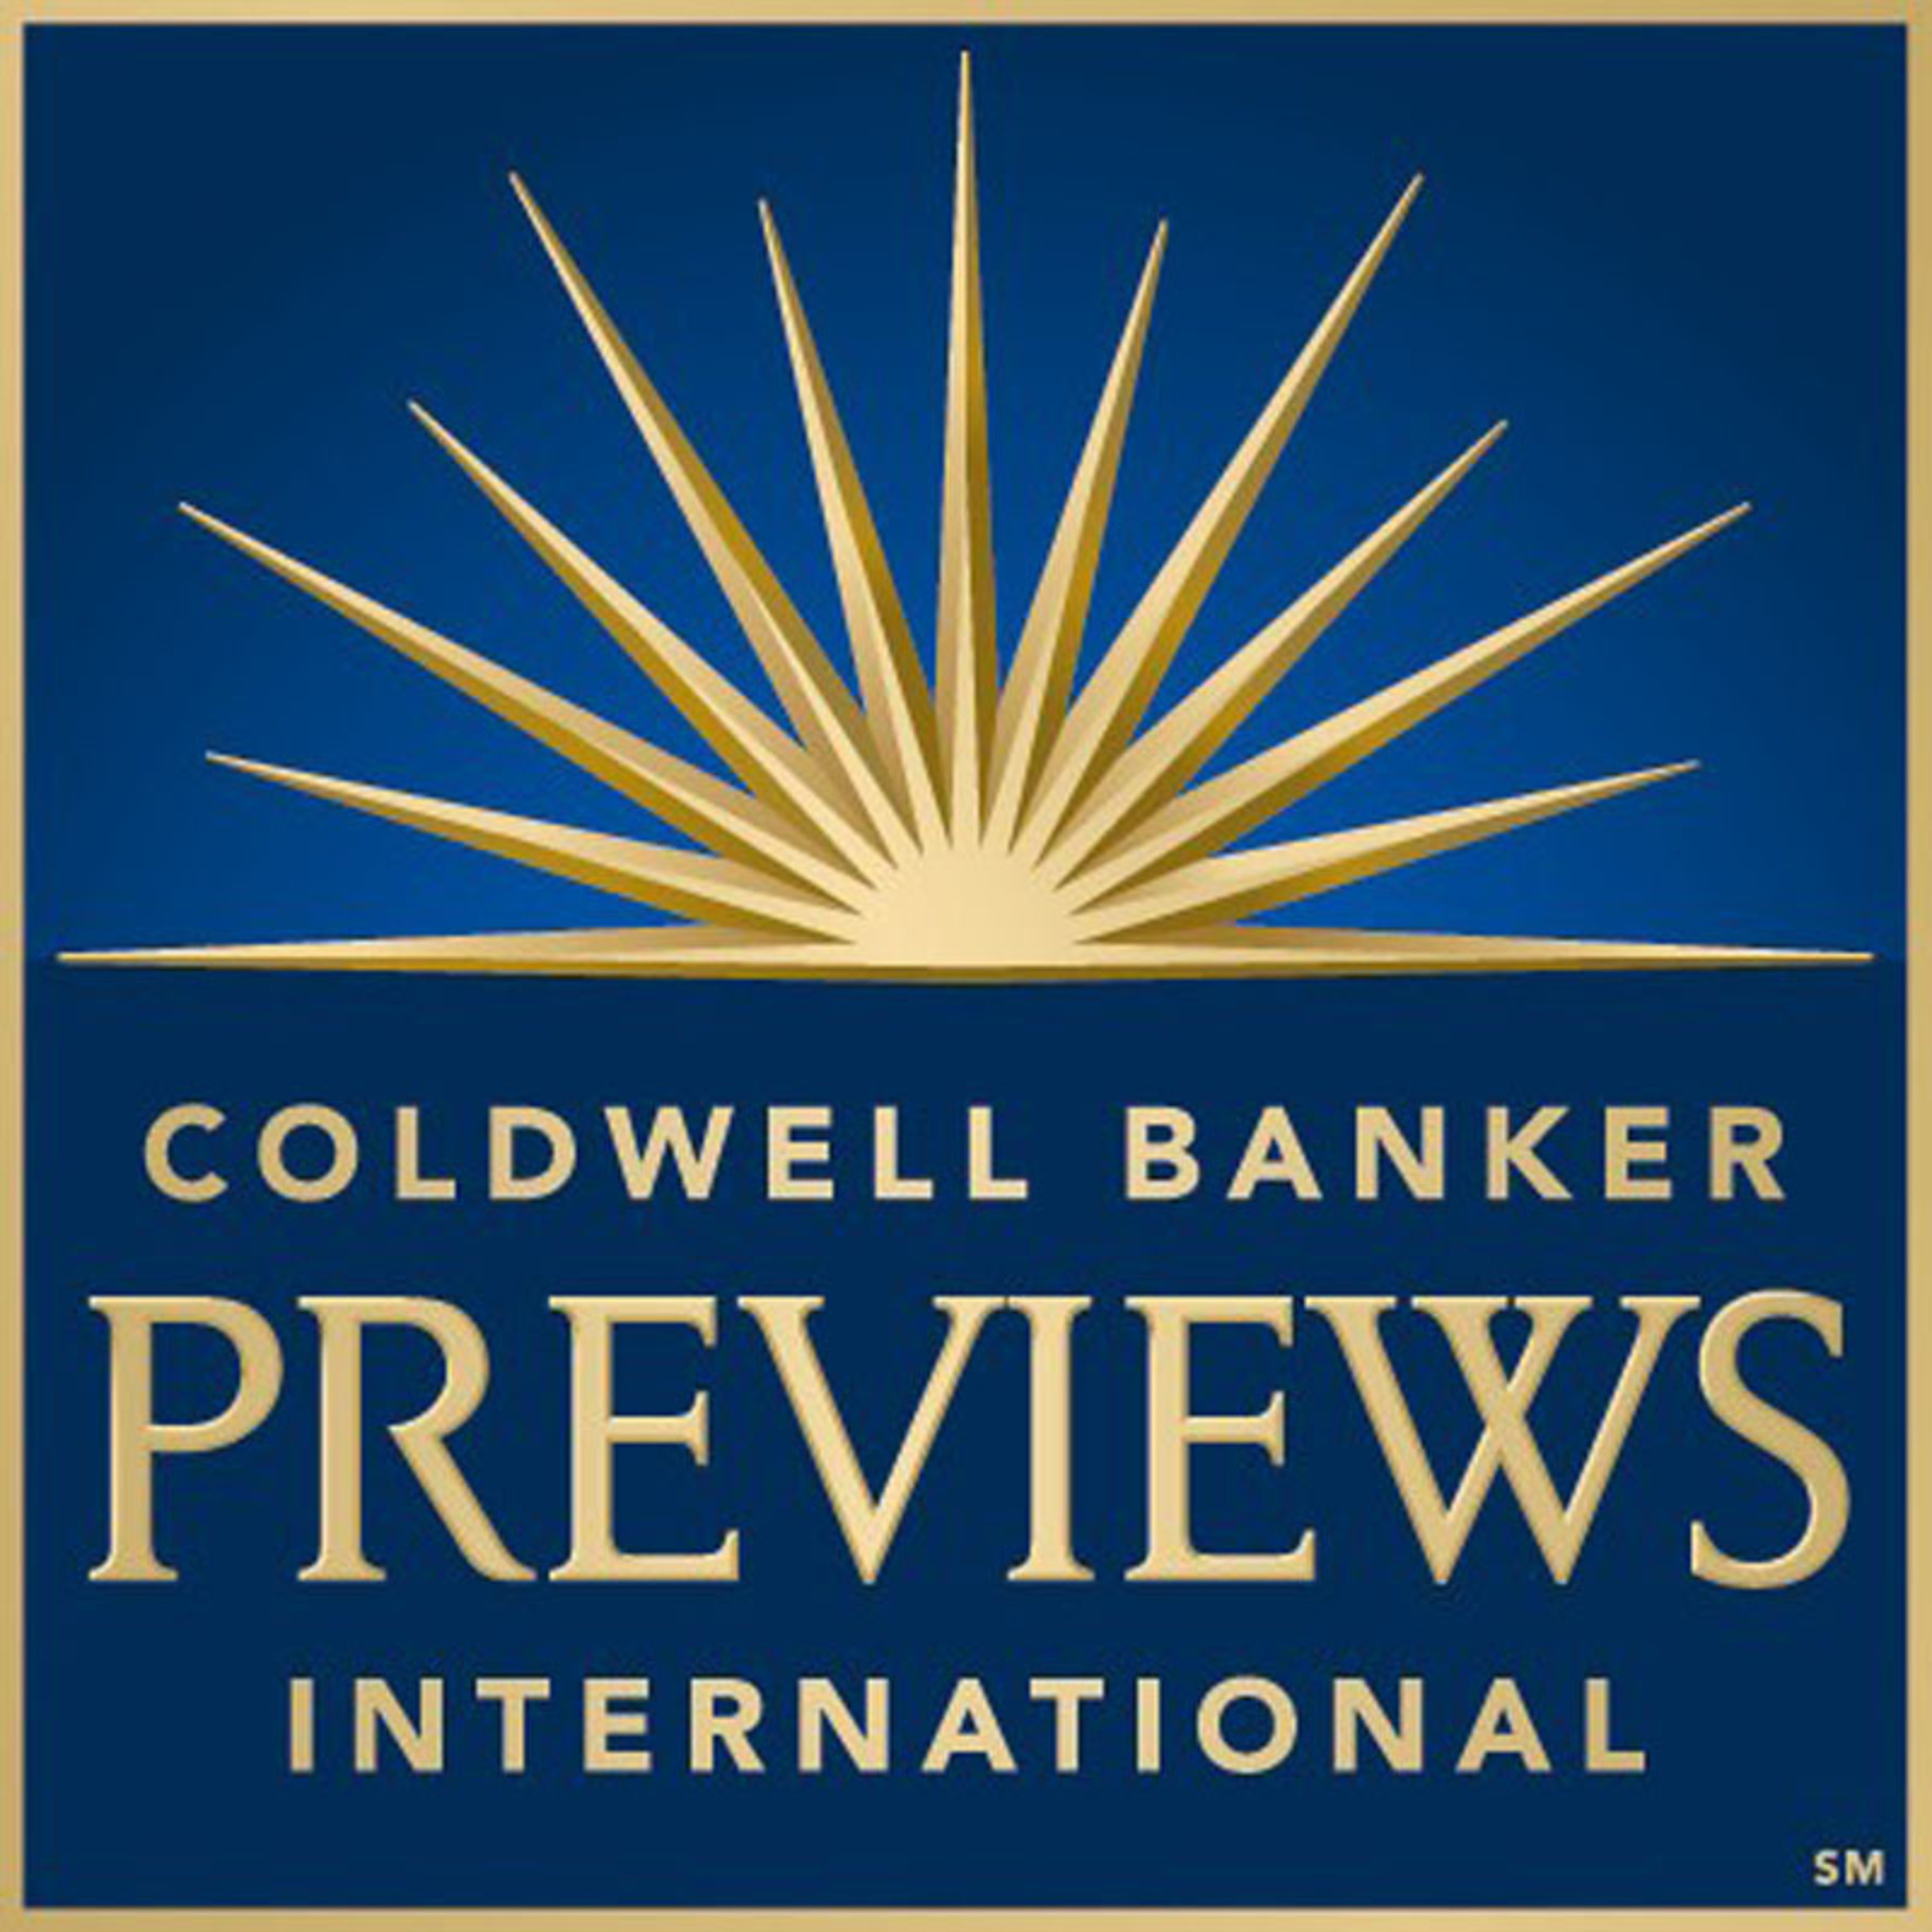 Coldwell Banker Previews International Luxury Market Report Finds High Demand for $10+ Million Homes in Four New Residential Communities